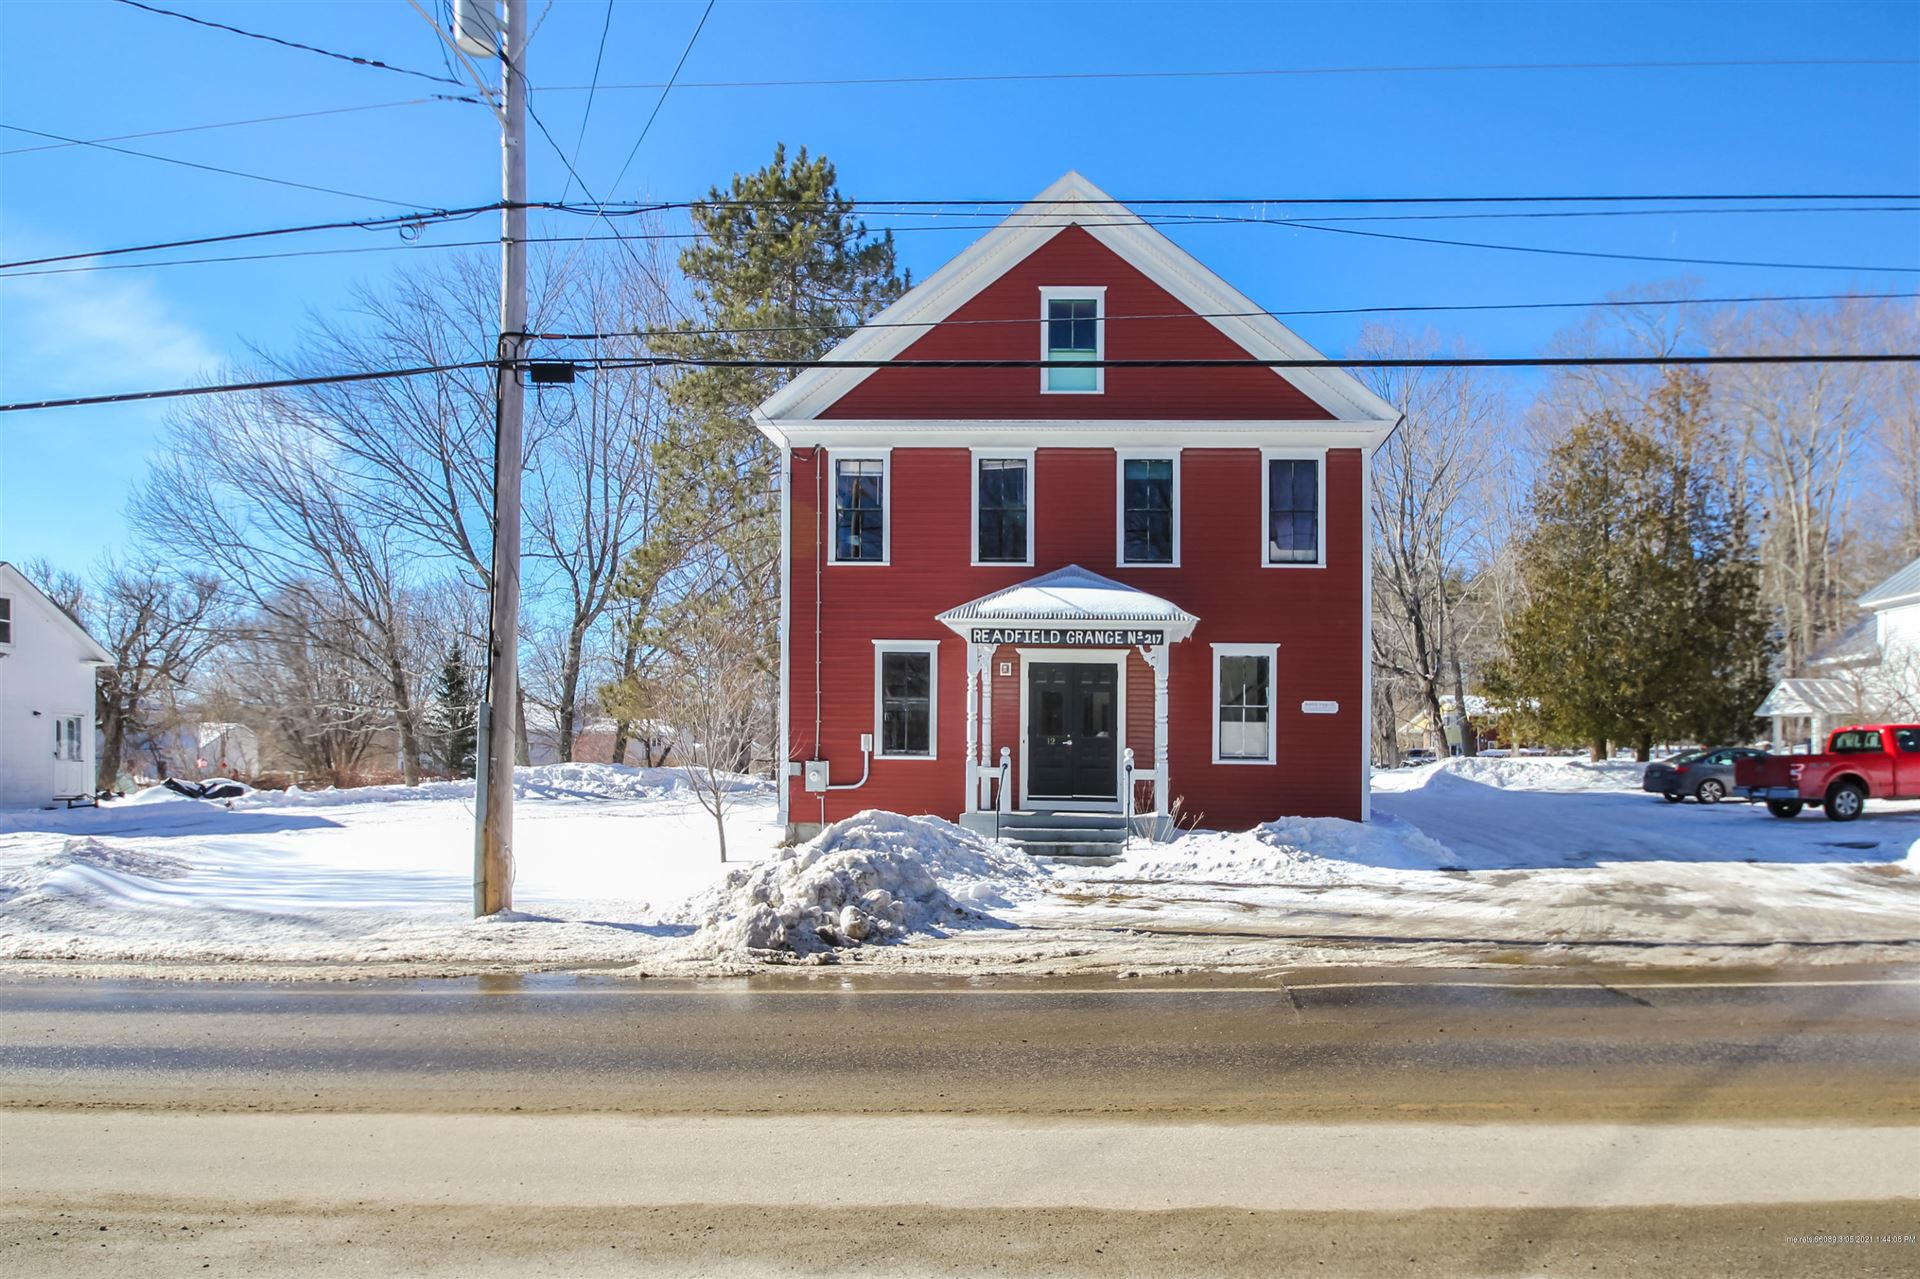 Photo of 12 Church Road, Readfield, ME 04355 (MLS # 1482471)